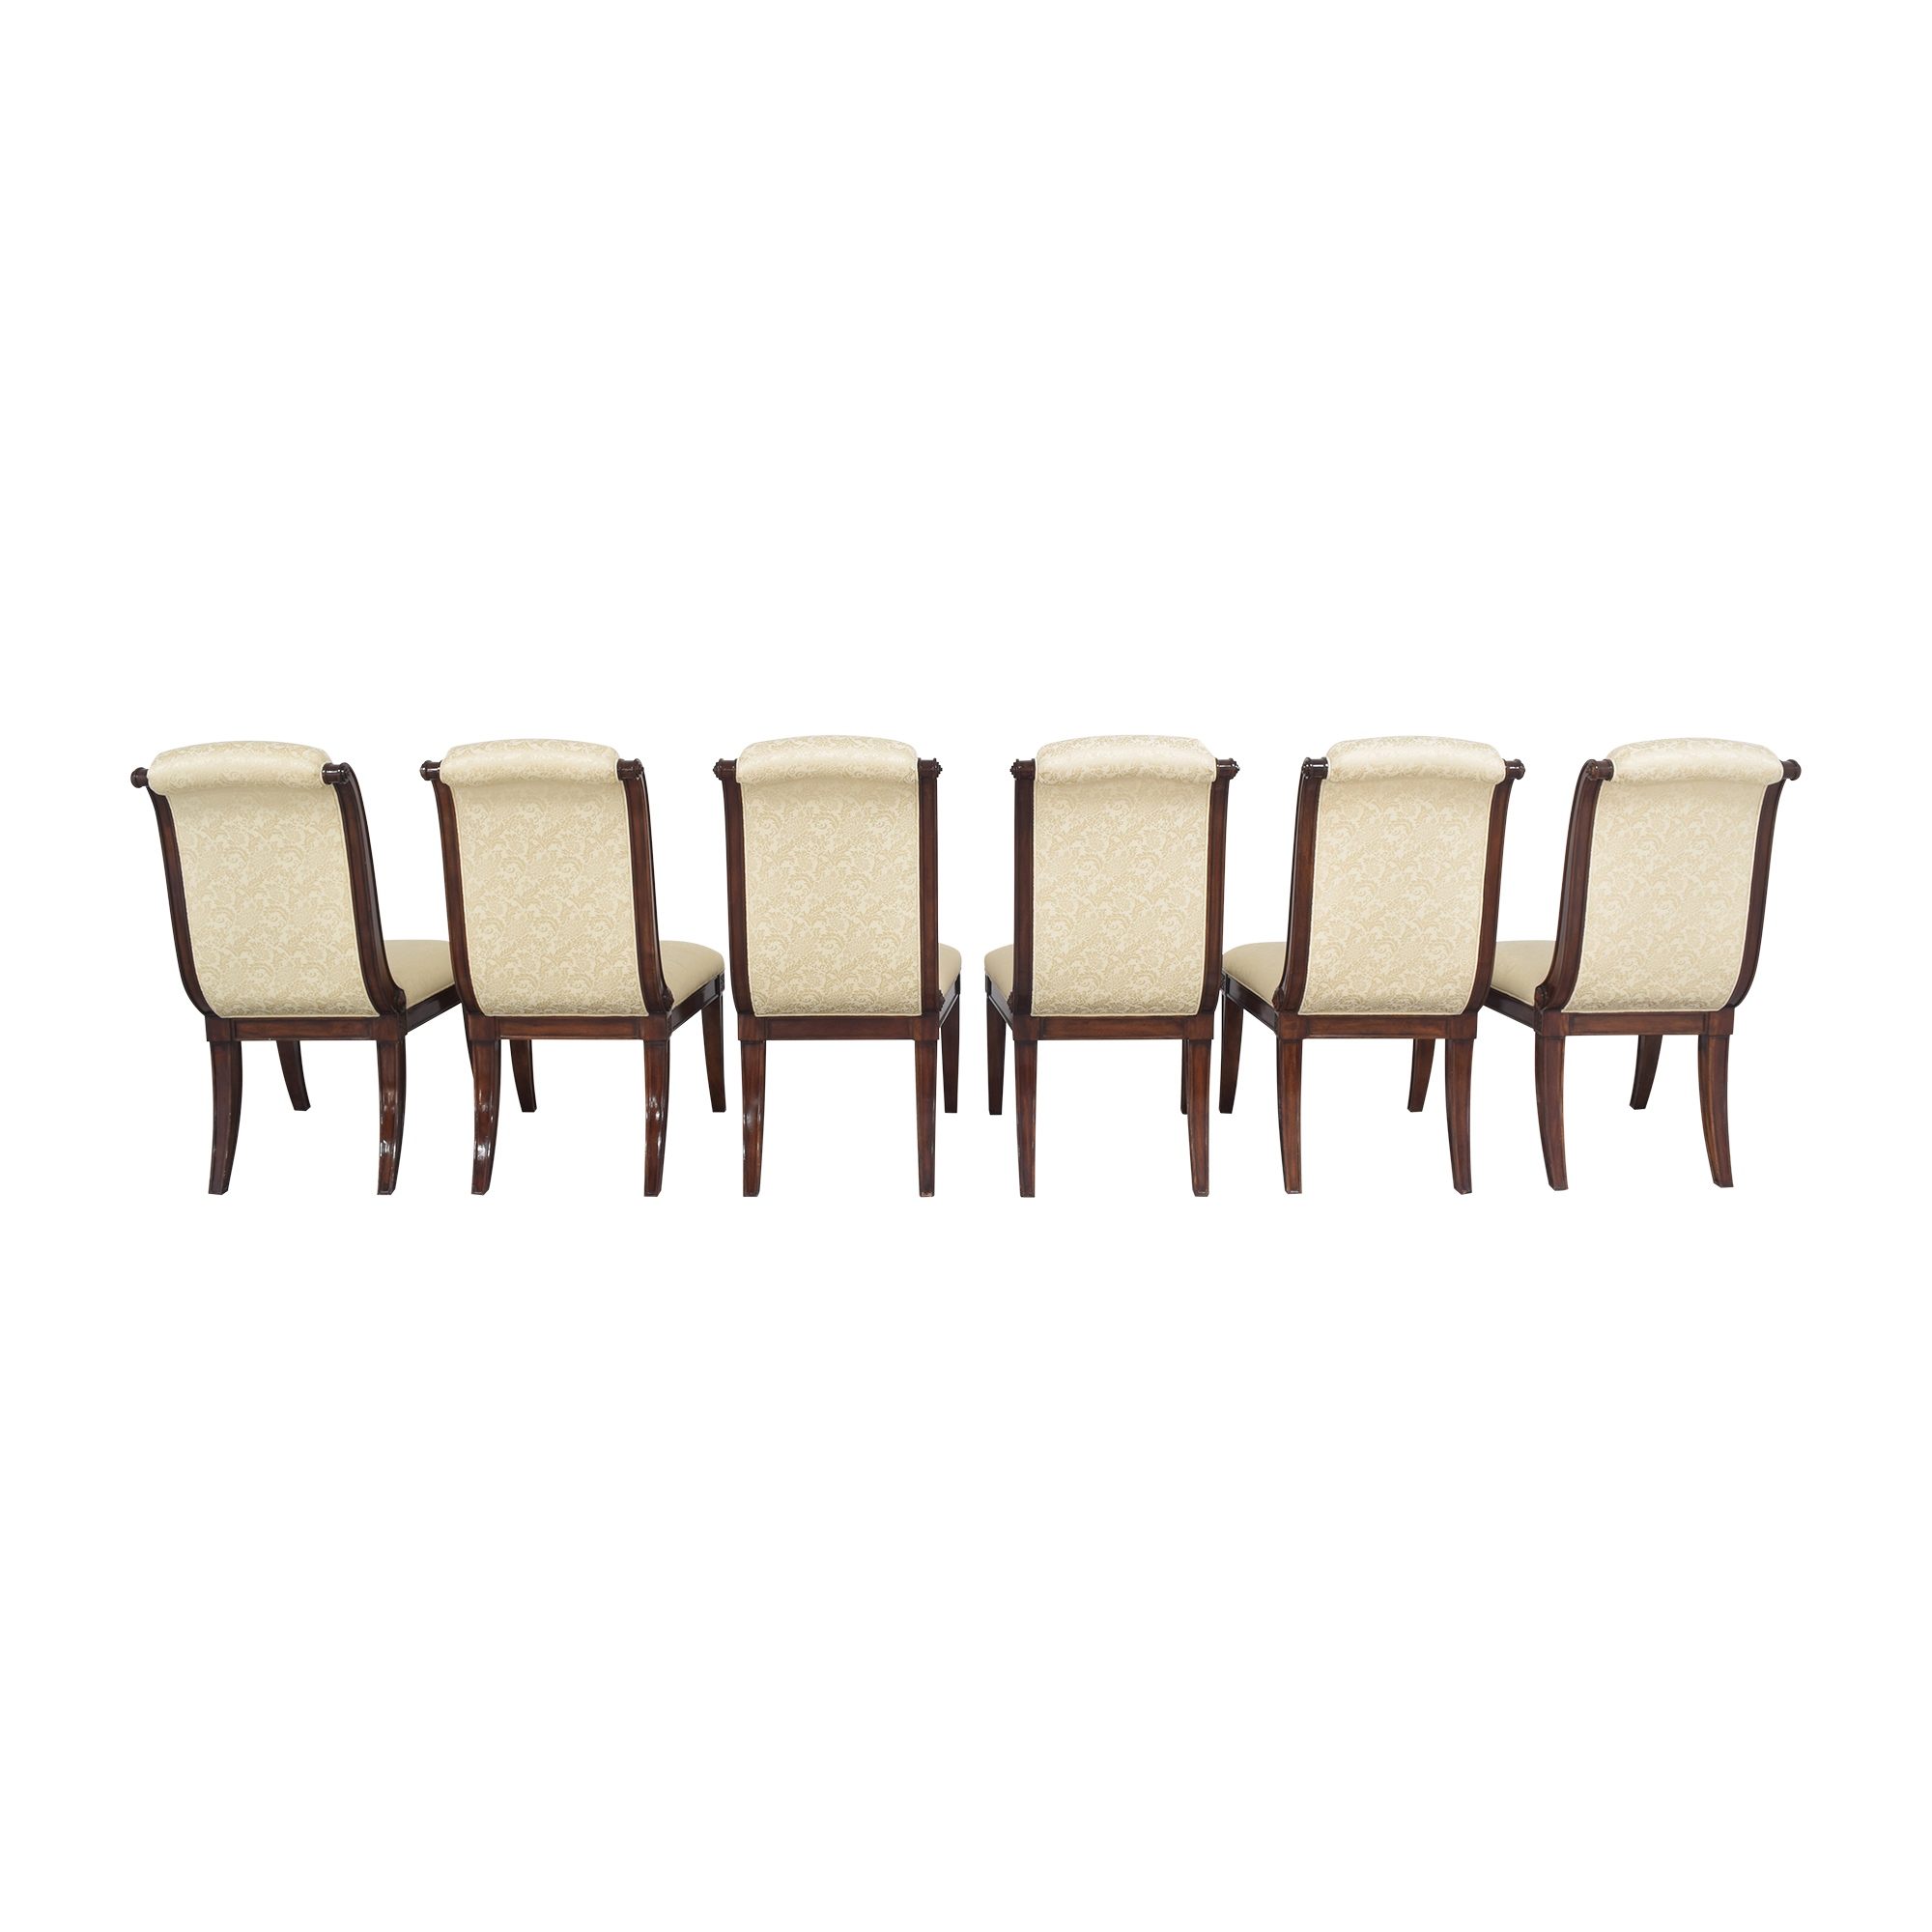 Theodore Alexander Gabrielle Side Chairs / Dining Chairs